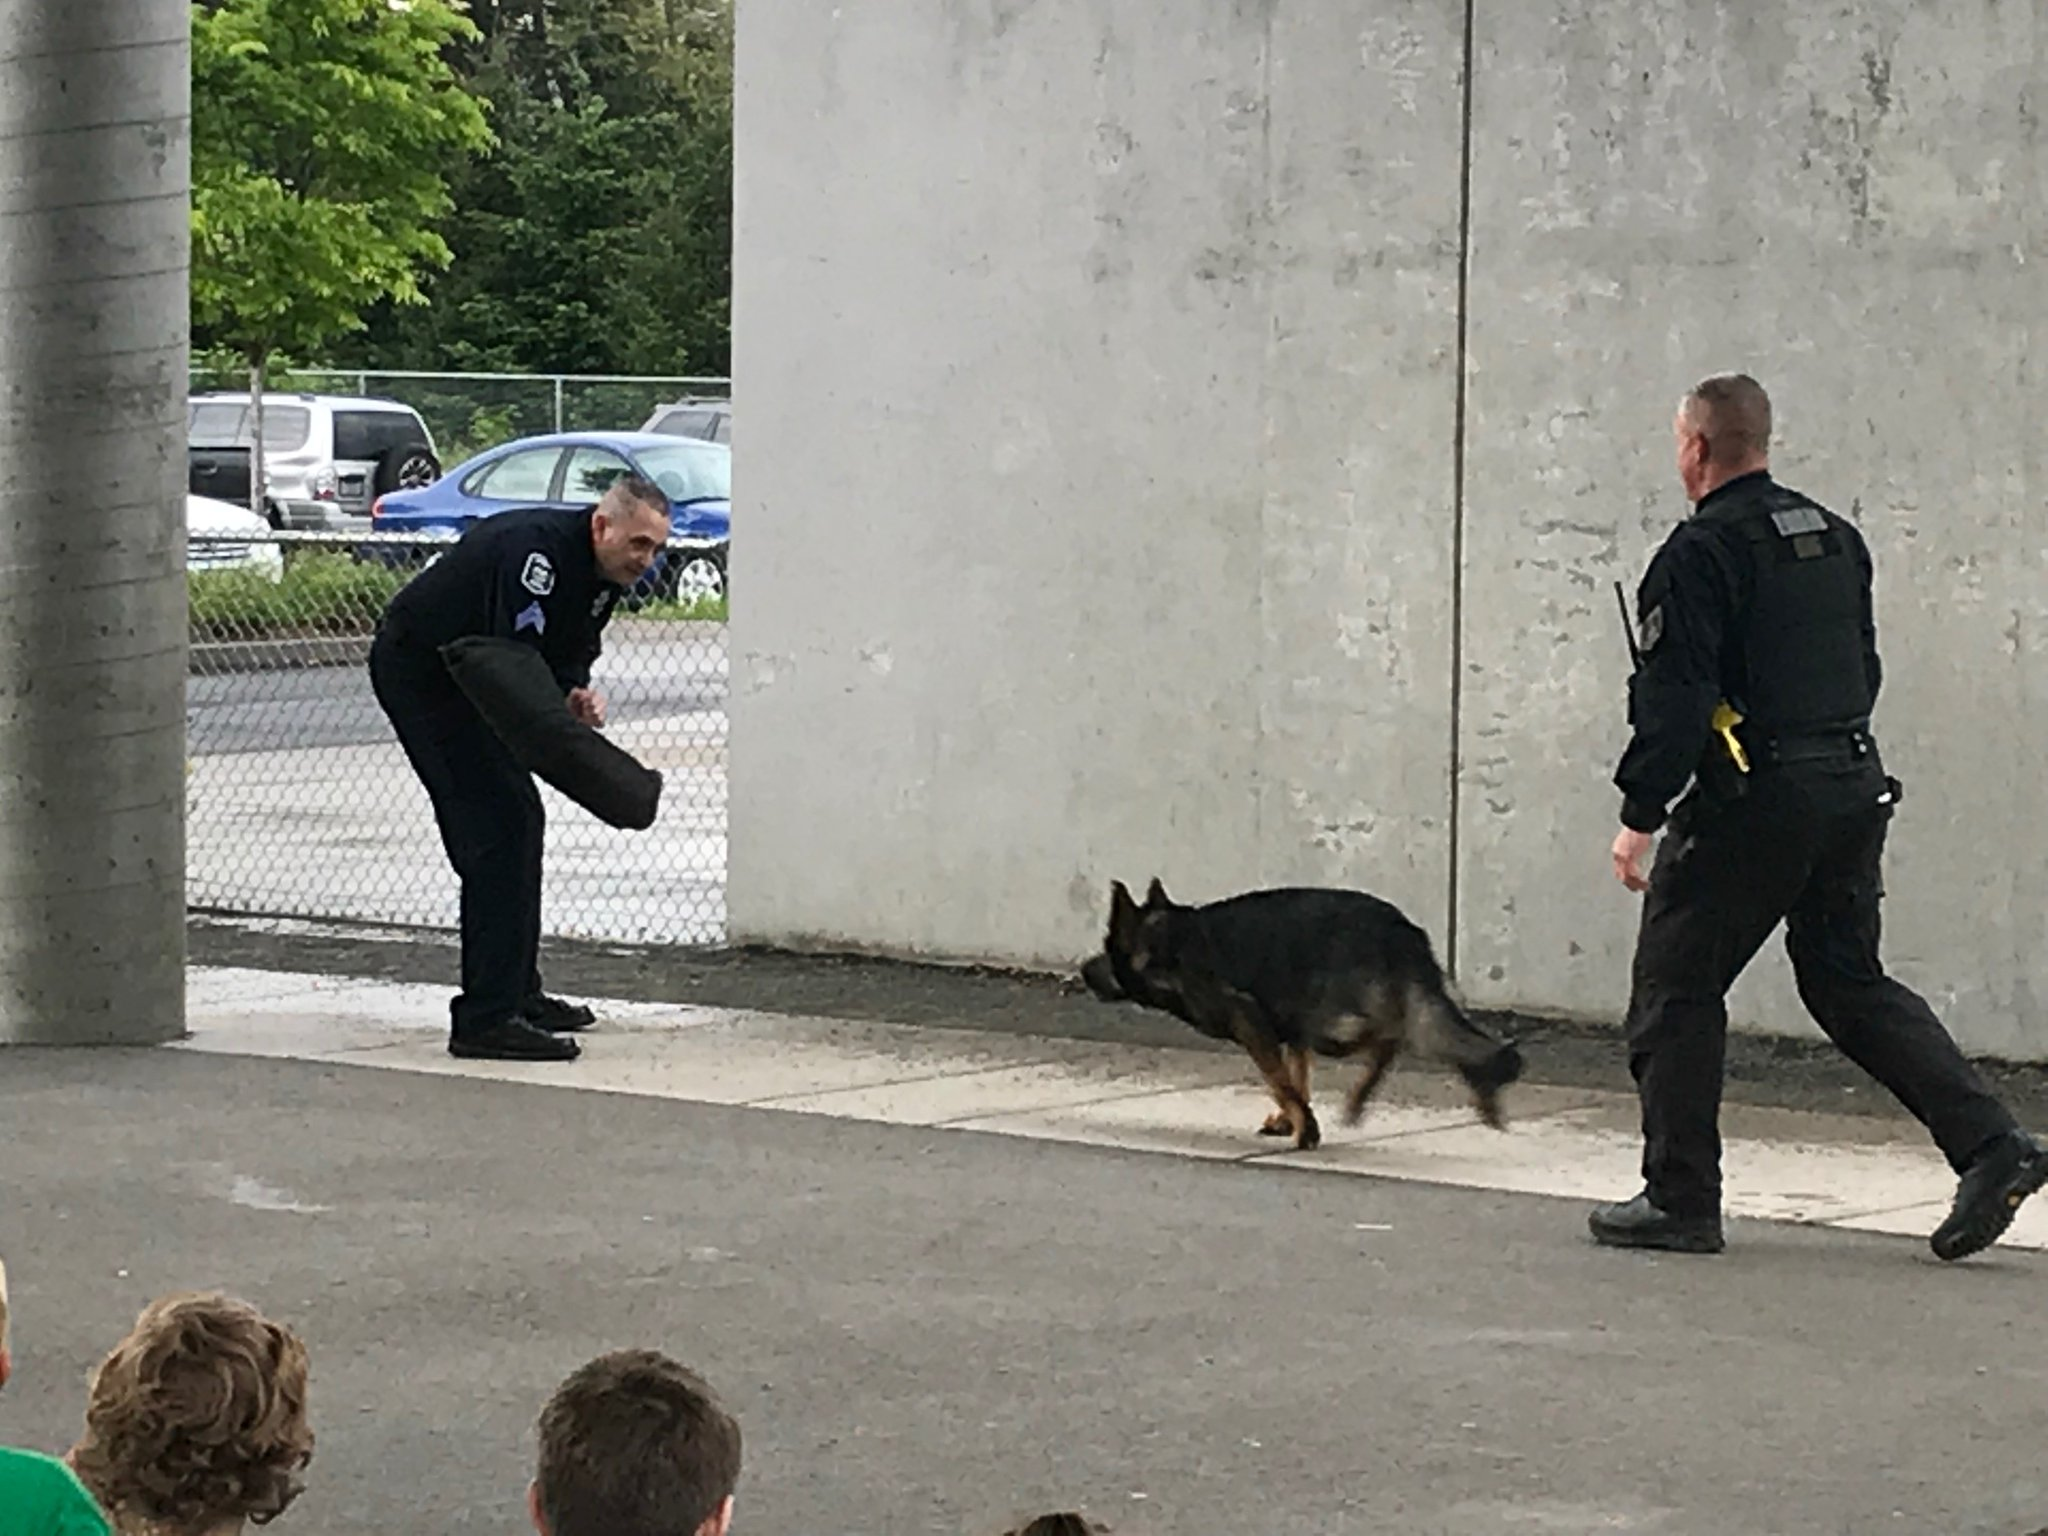 Sgt. Jason Berreth and Officer Michael Casey with K9 Cjuk demonstrated police dog work for Cub Scout Pack 75 Tuesday night at Thurston Elementary. (Photo via EPD)